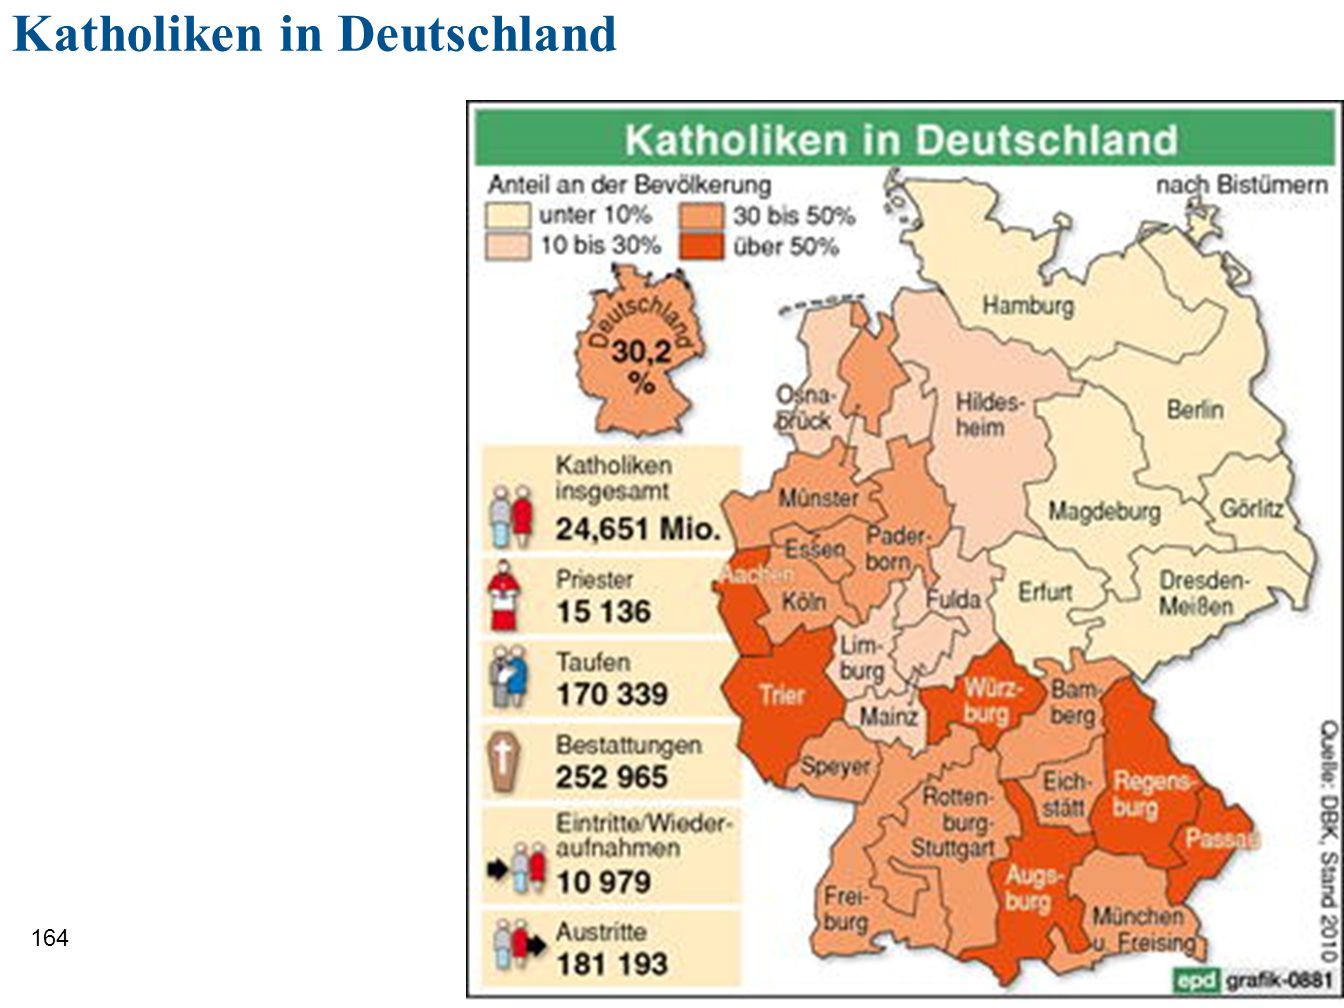 Katholiken in Deutschland